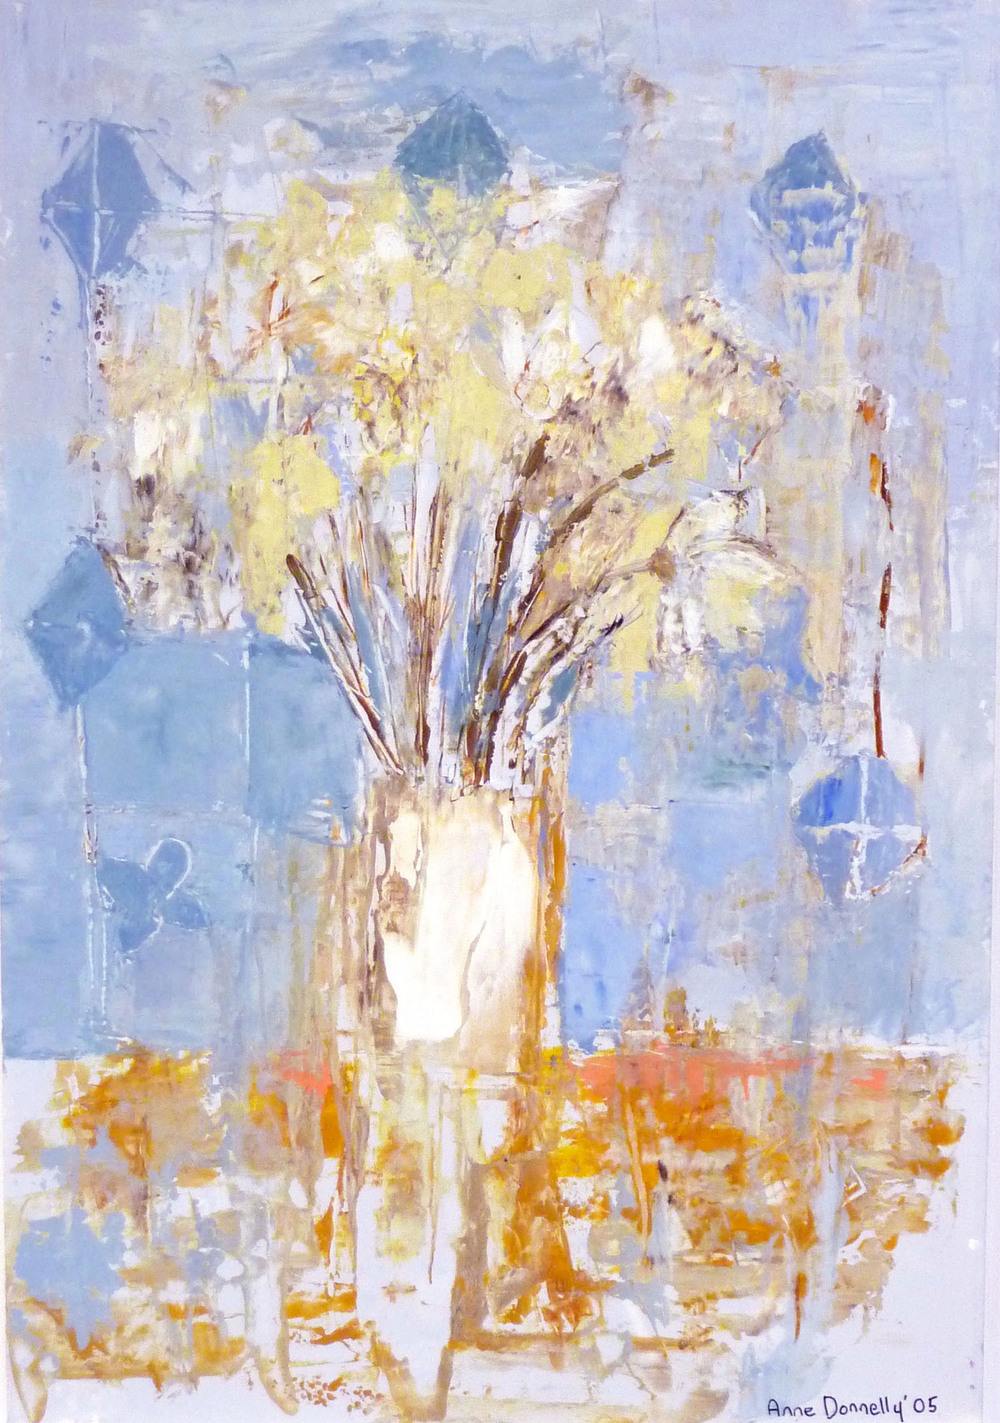 Anne Donnelly_-_Flowers_oil on board_48 x 33.5cm.jpg